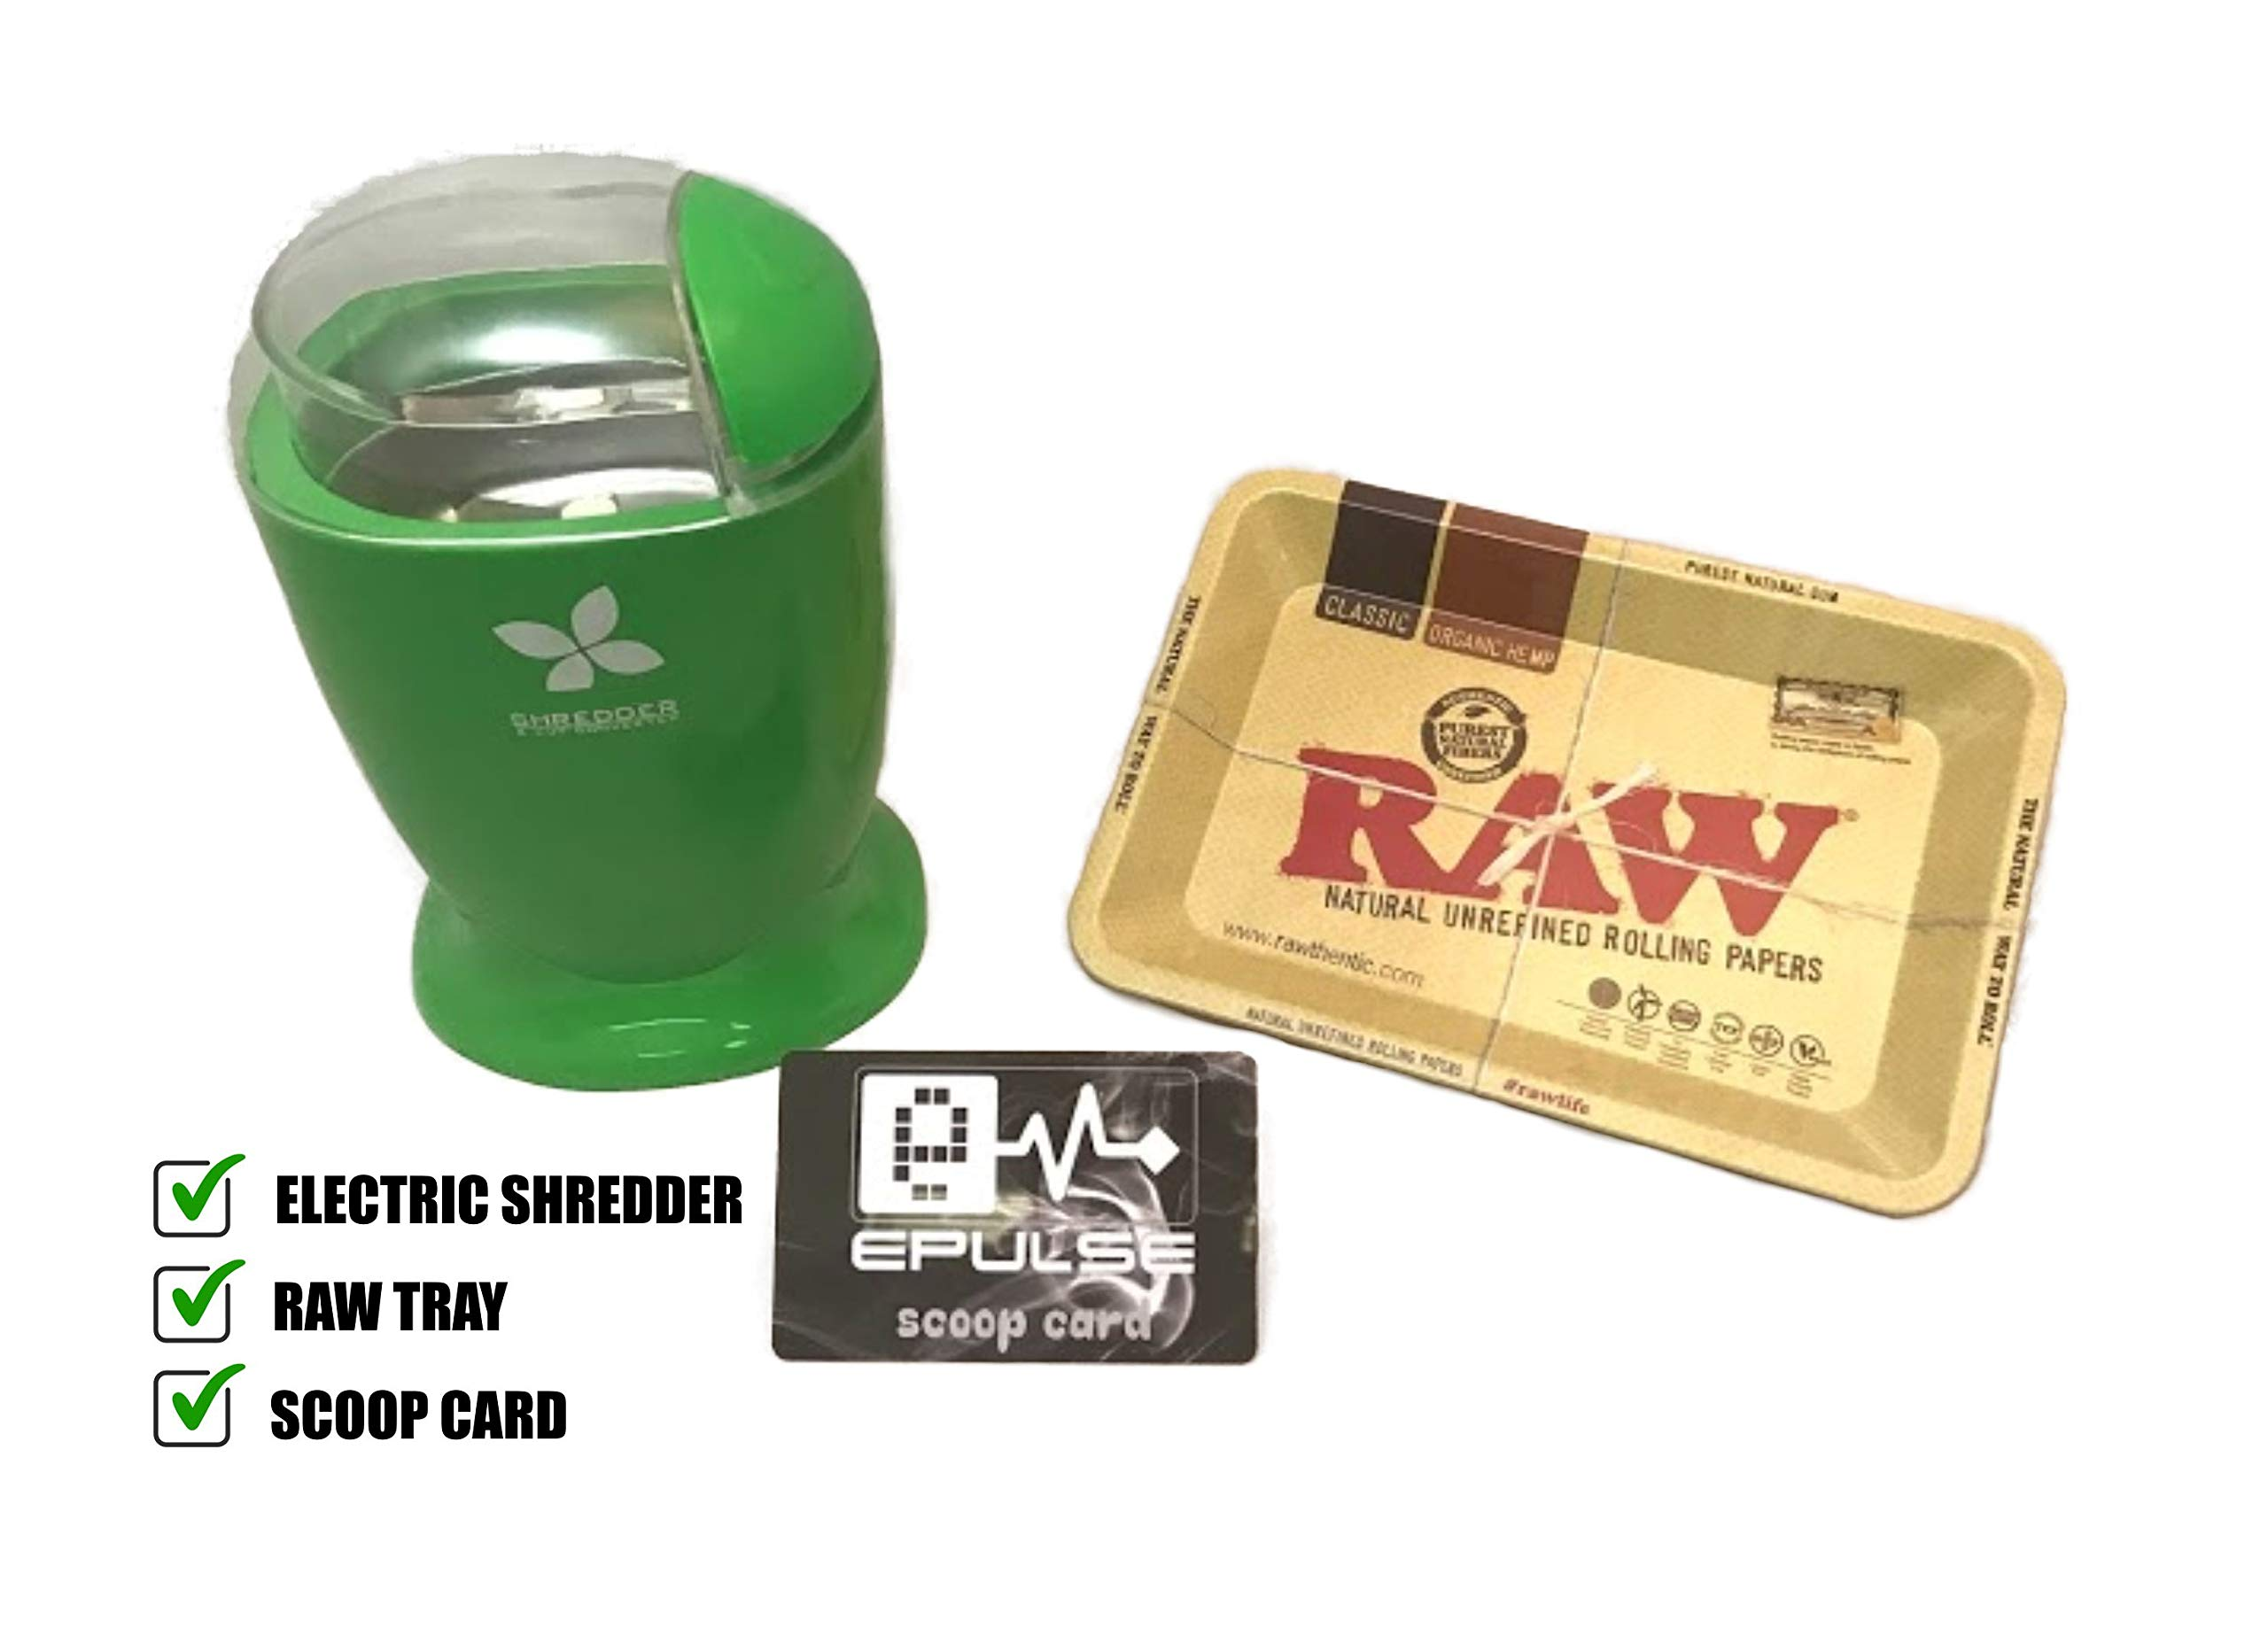 Bundle: Raw Metal Rolling Tray Mini & Electric Herb Shredder - Cutter - Converter with epulse Scoop Card